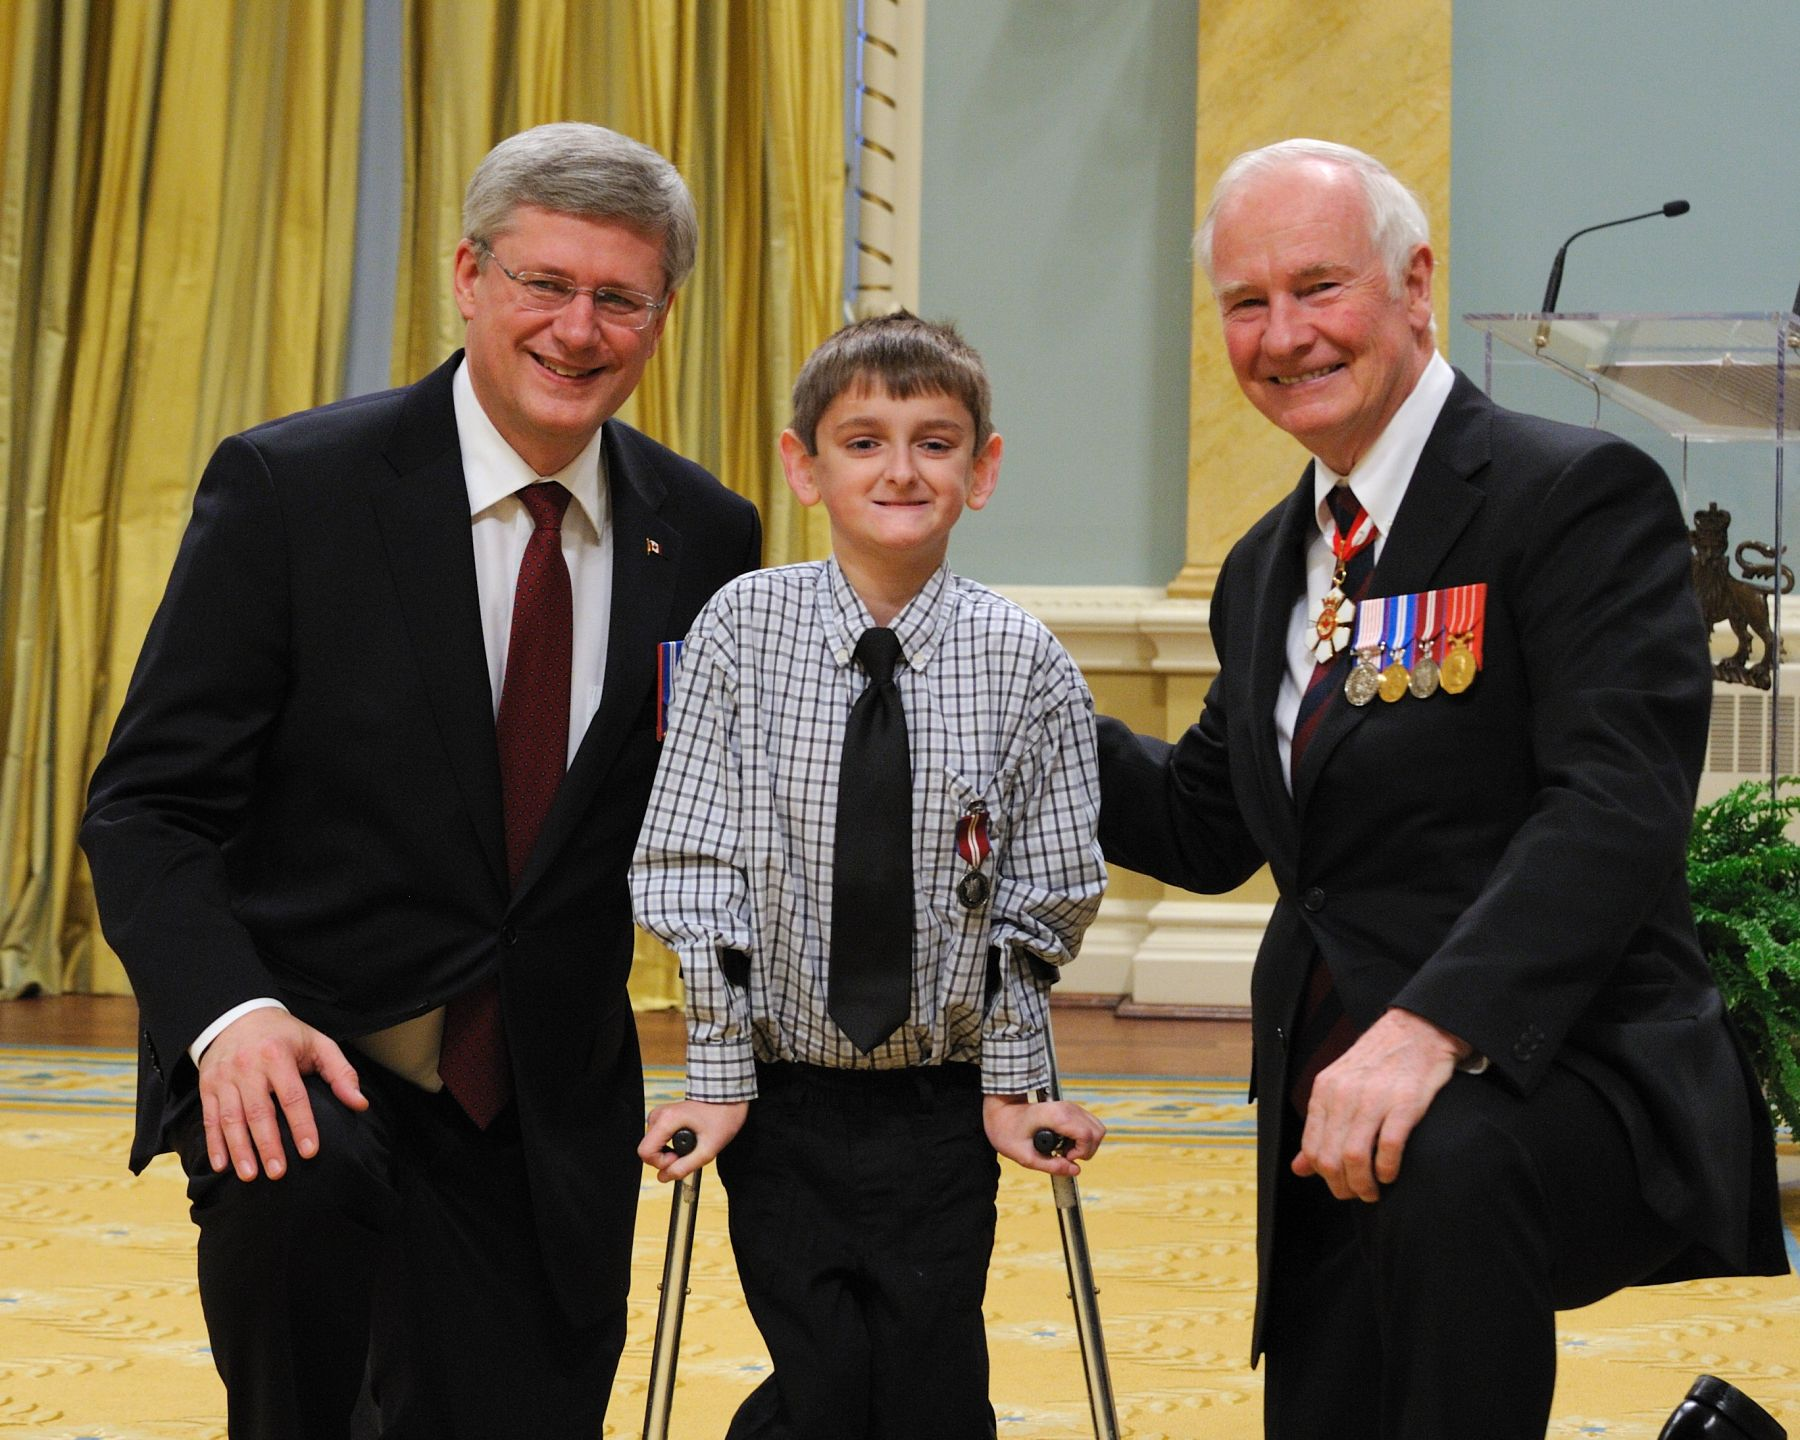 Bryden Hutt (Yarmouth, Nova Scotia) was recognized for his dedication to and efforts in support of the Children's Wish Foundation.